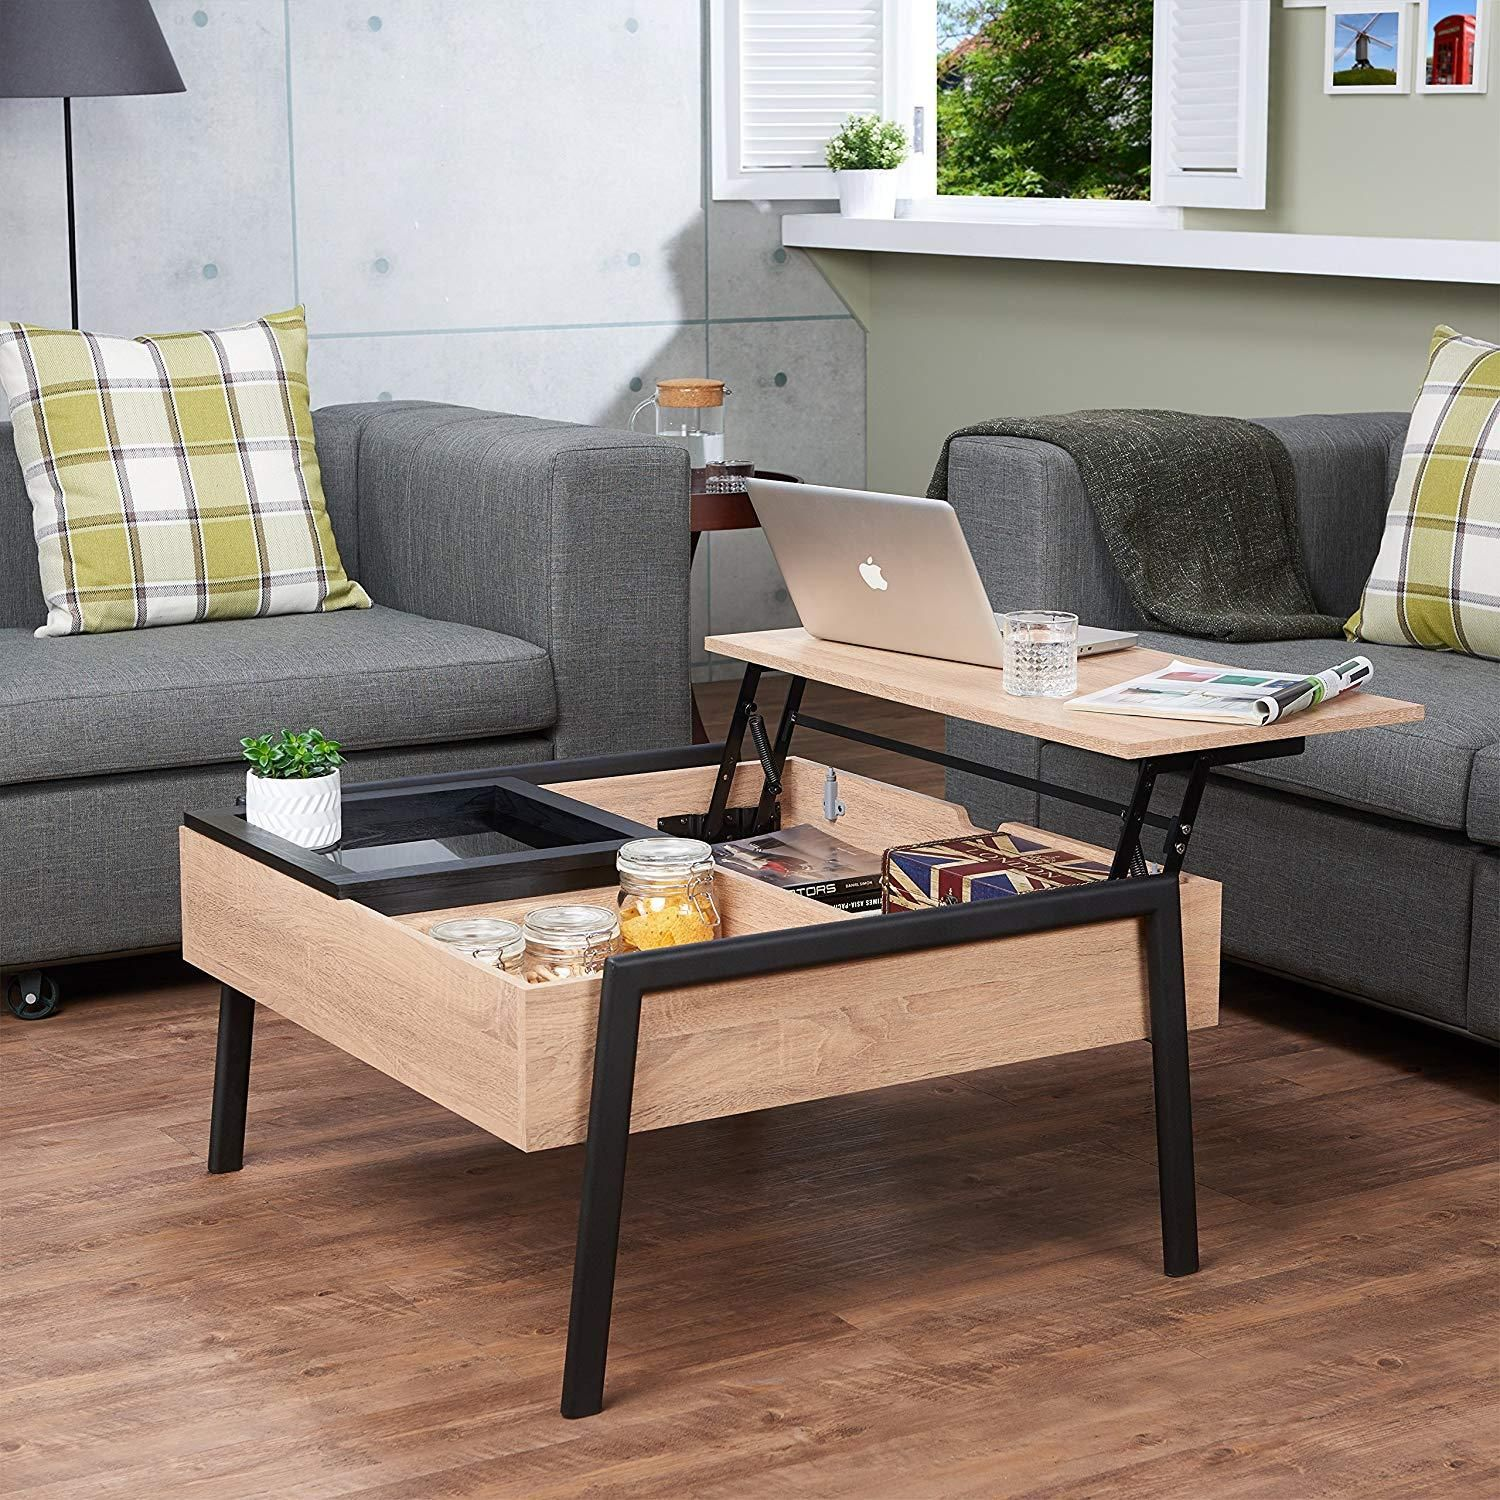 Acme 831885 Fakhanu Natural Wood Finish Lift Top Coffee Table Coffee Table Simple Coffee Table Coffee Table With Storage [ 1500 x 1500 Pixel ]